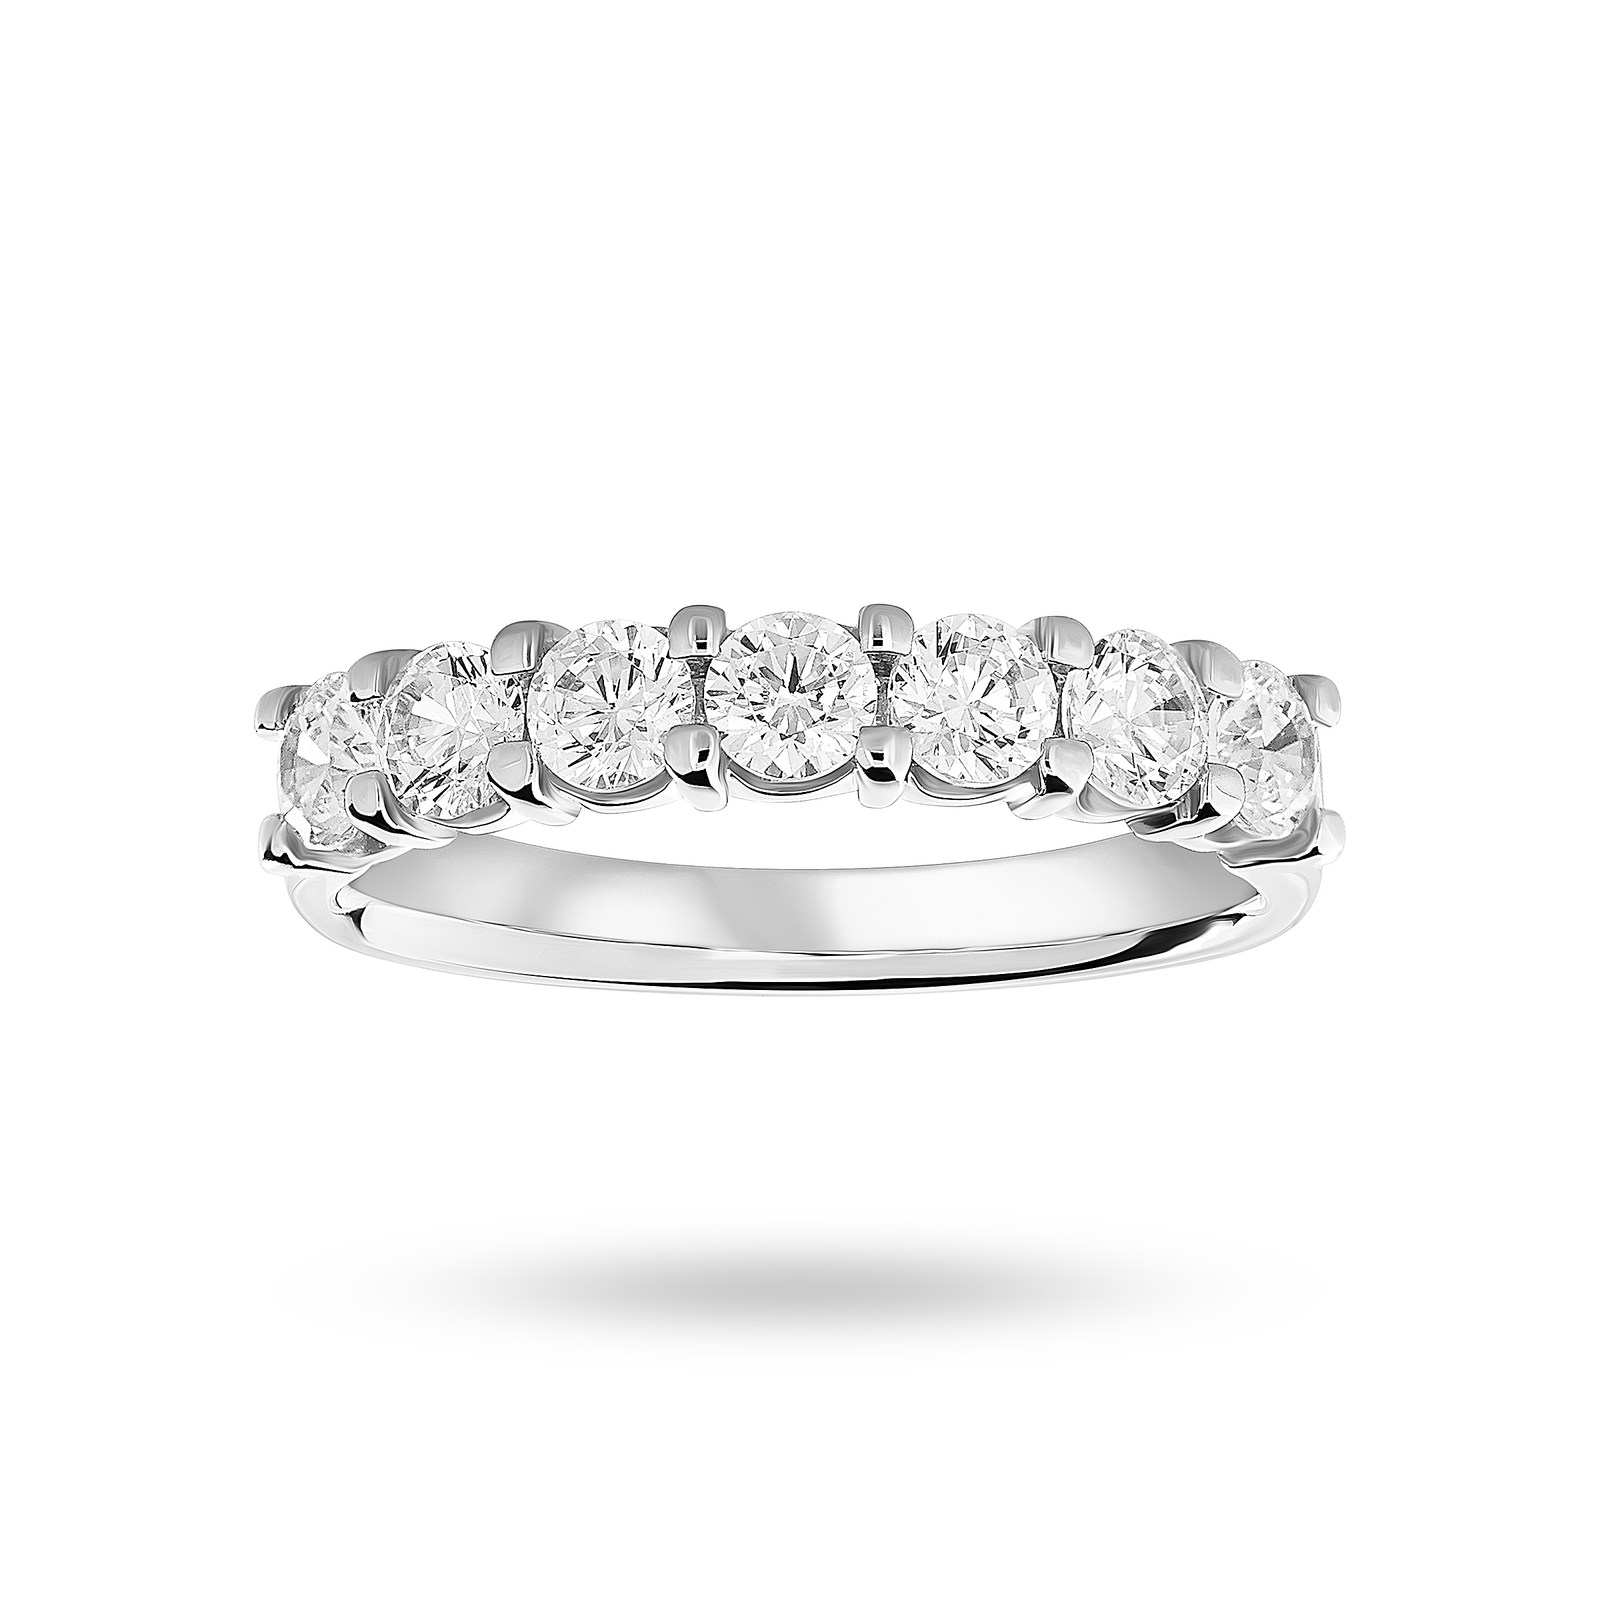 Platinum 1.00 Carat Brilliant Cut Under Bezel Half Eternity Ring